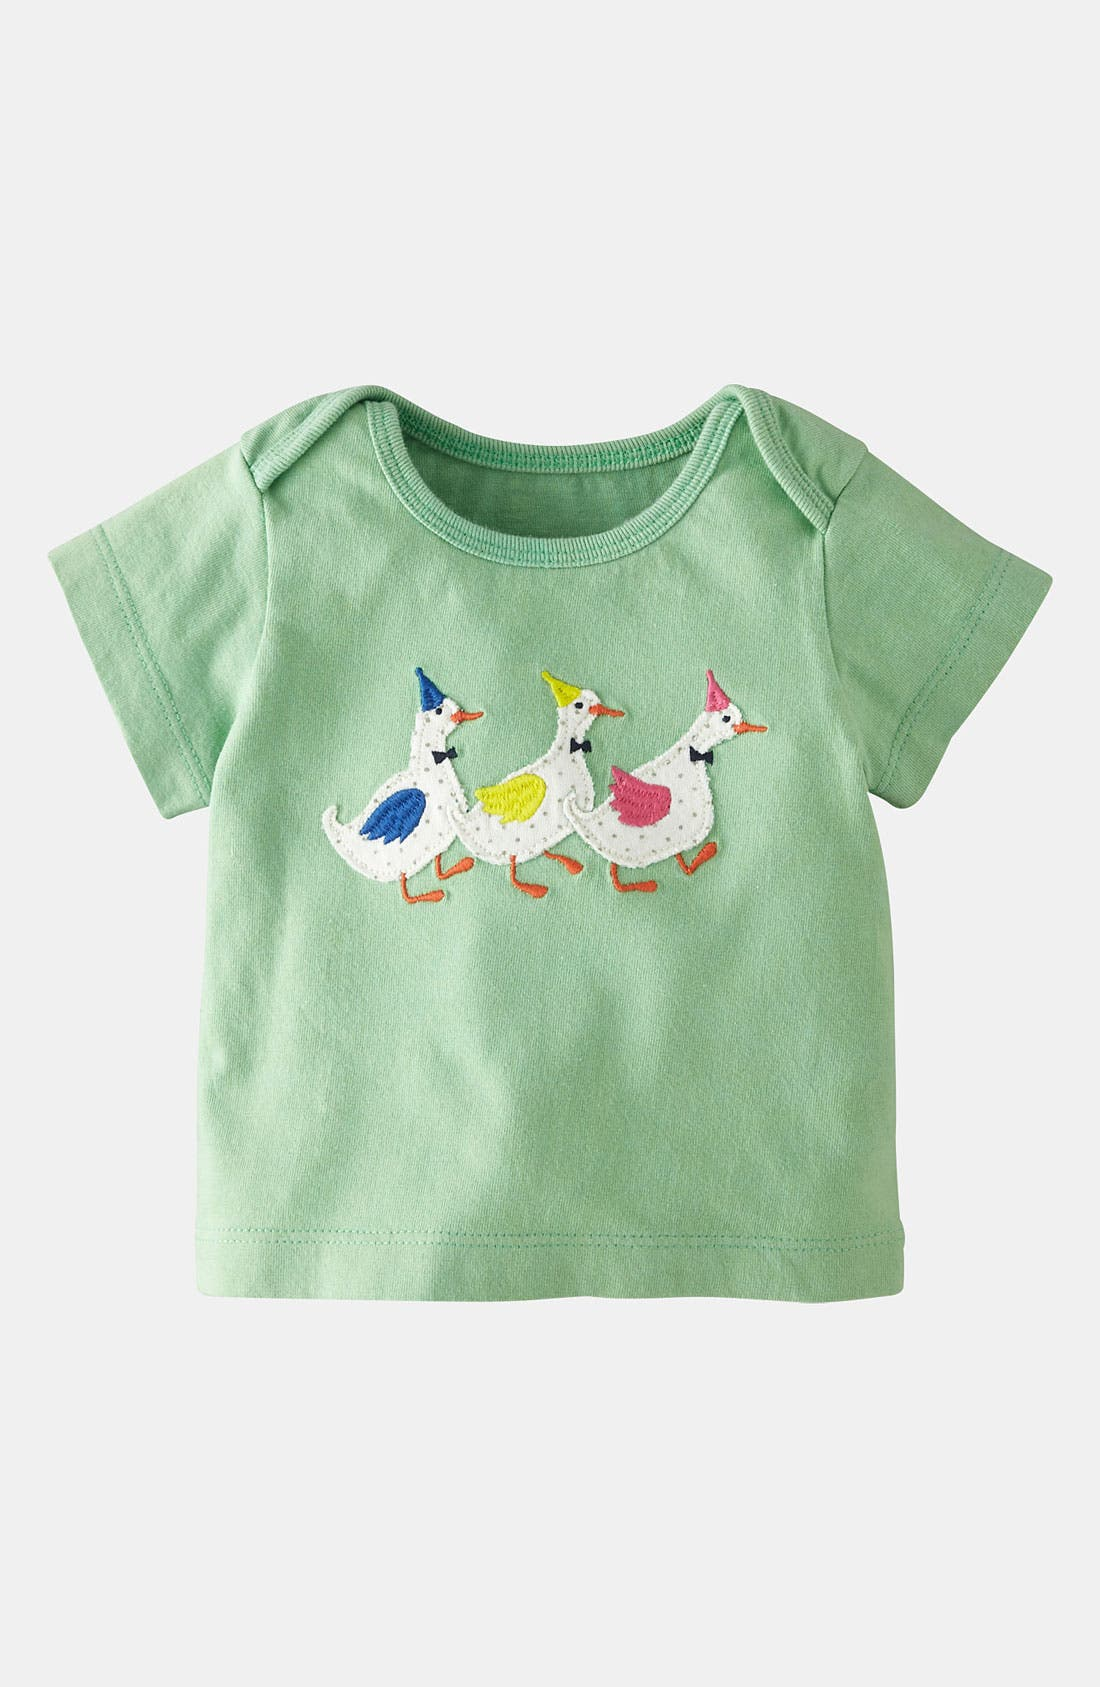 Alternate Image 1 Selected - Mini Boden 'Party Animals' Tee (Baby)